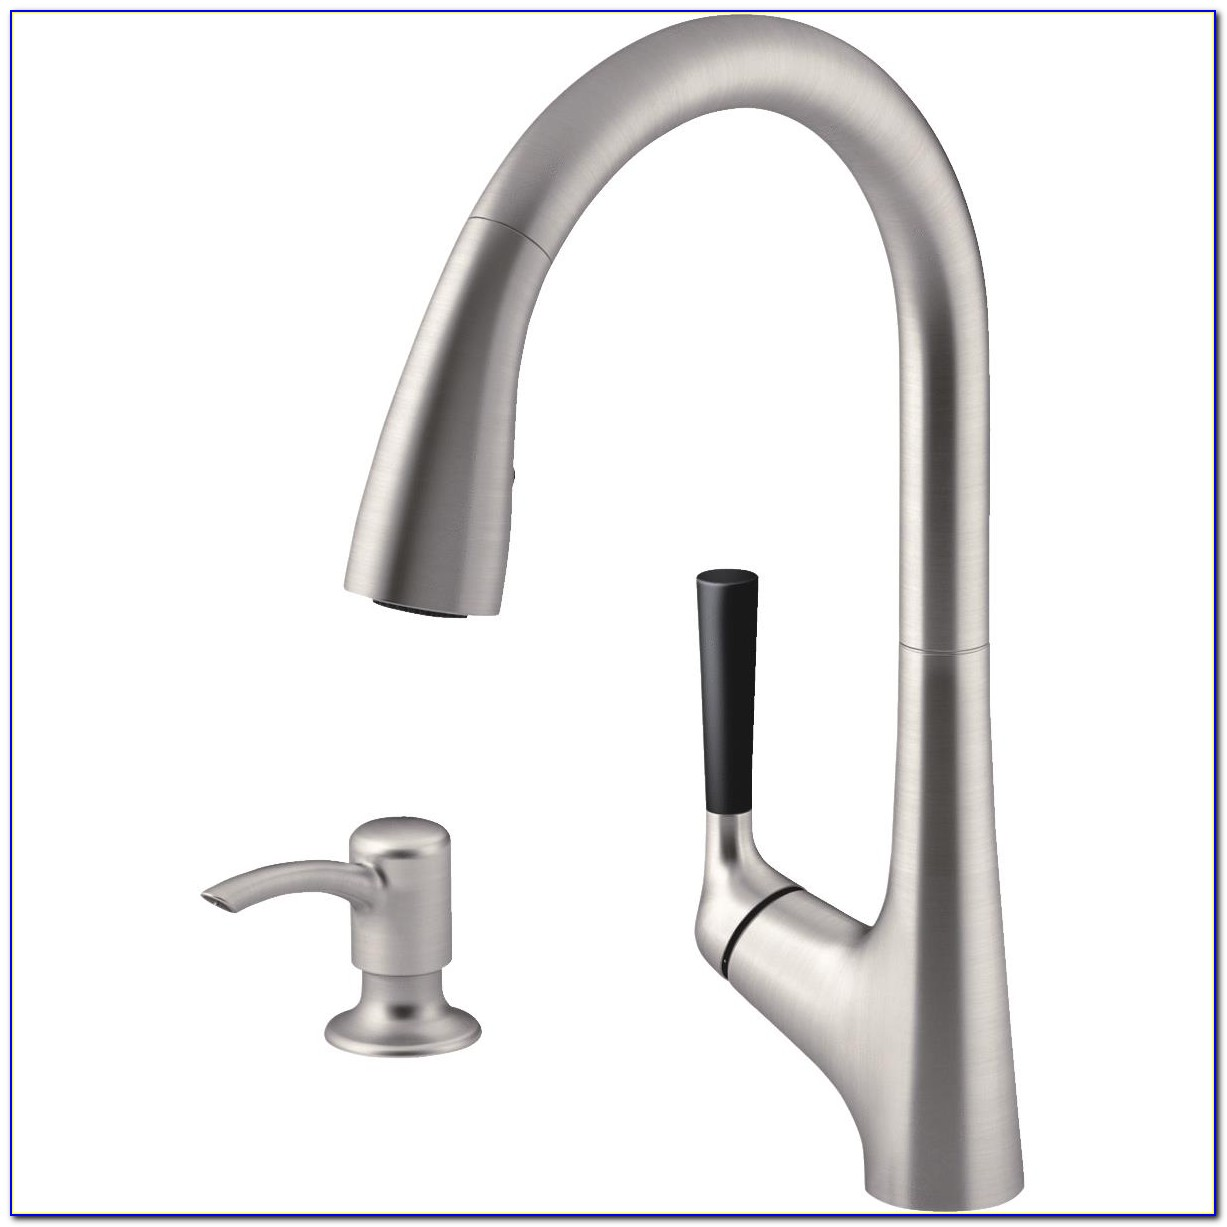 Kohler Artifacts Pull Down Kitchen Faucet